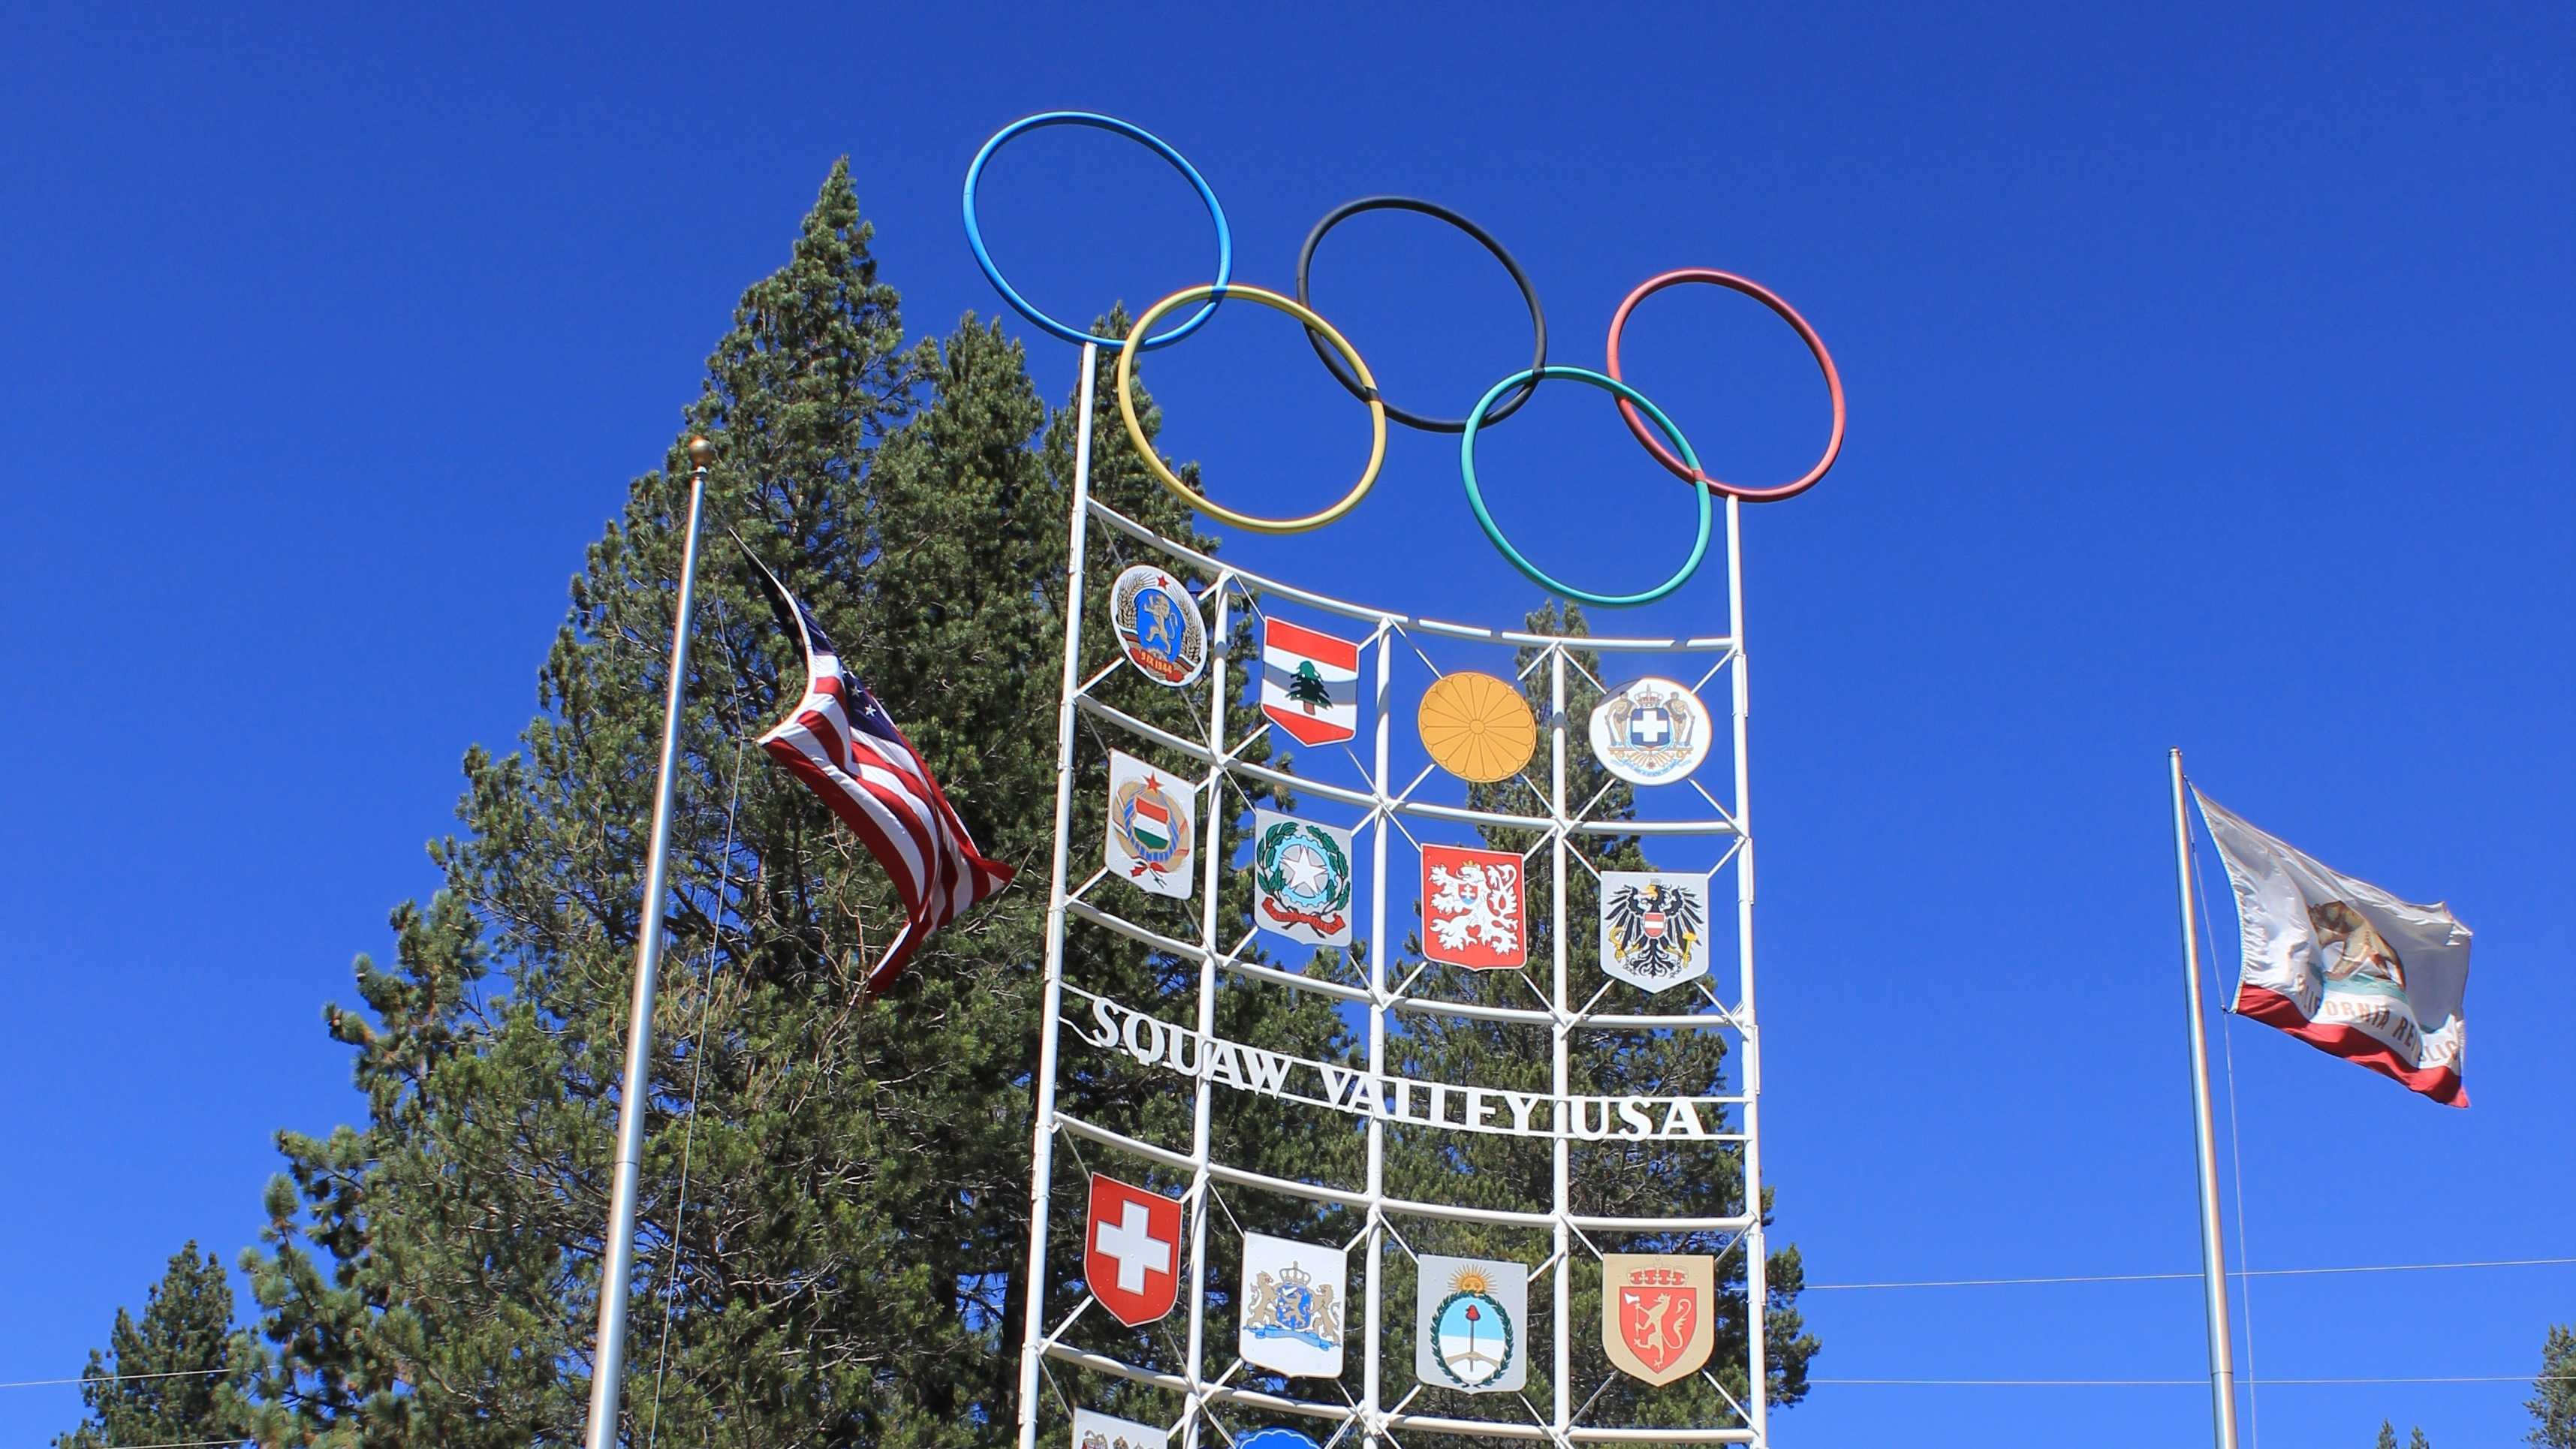 Squaw Valley, Olympic Valley.jpg